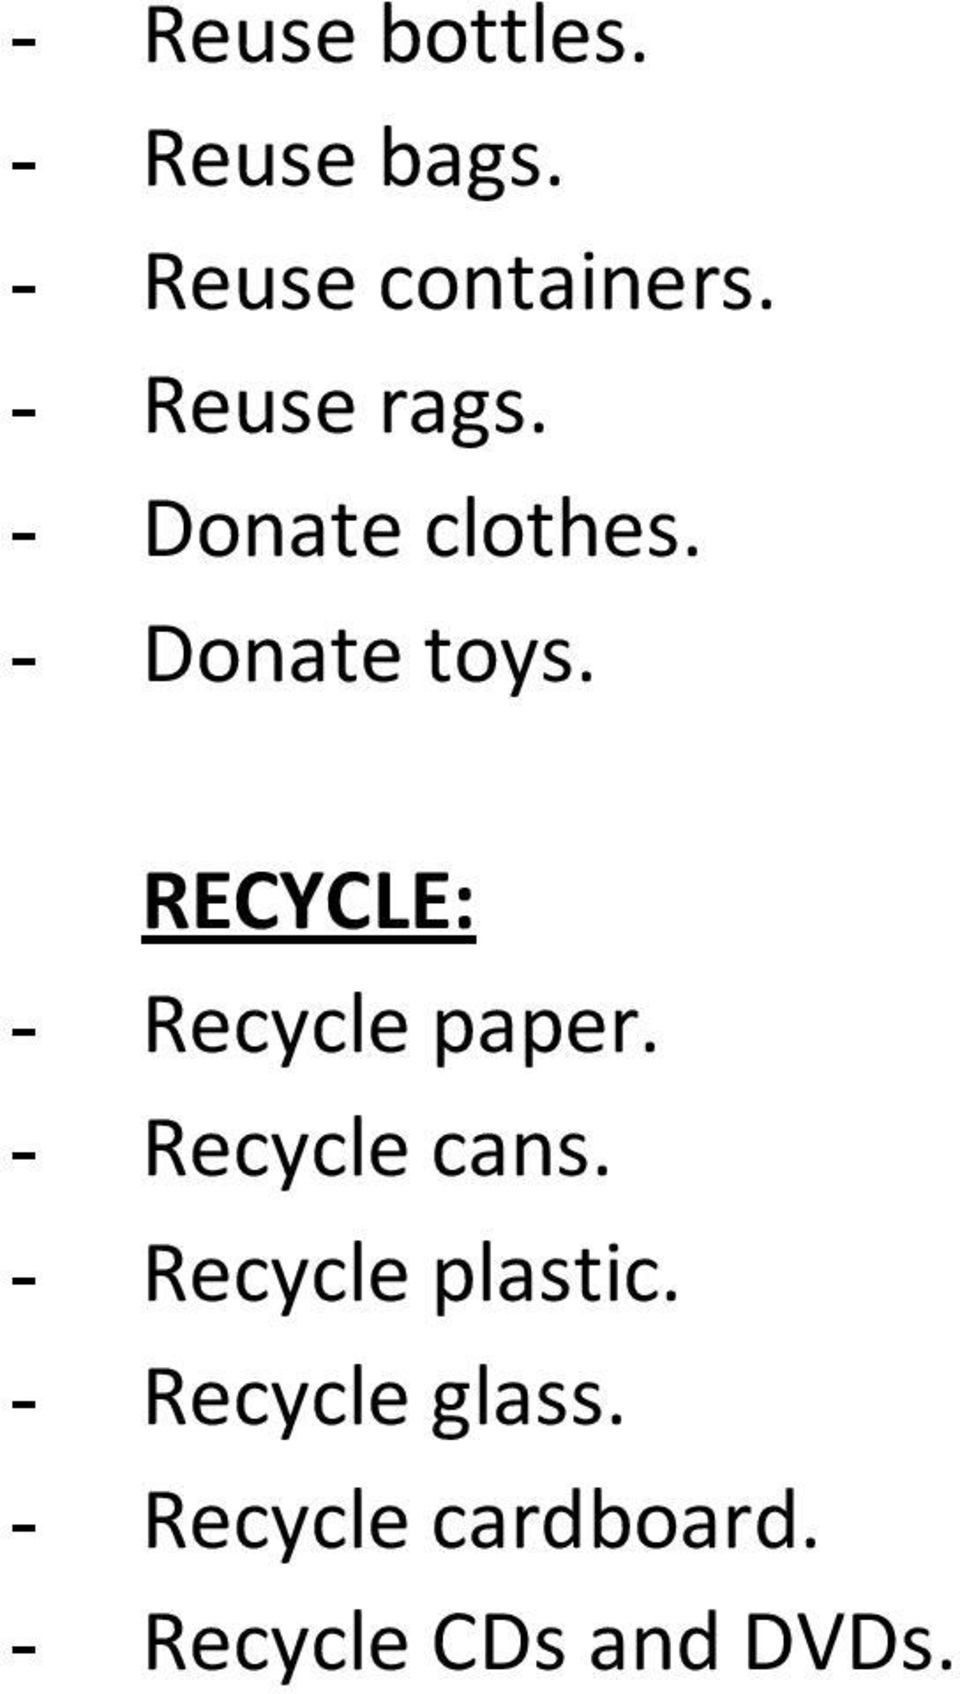 RECYCLE: - Recycle paper. - Recycle cans.